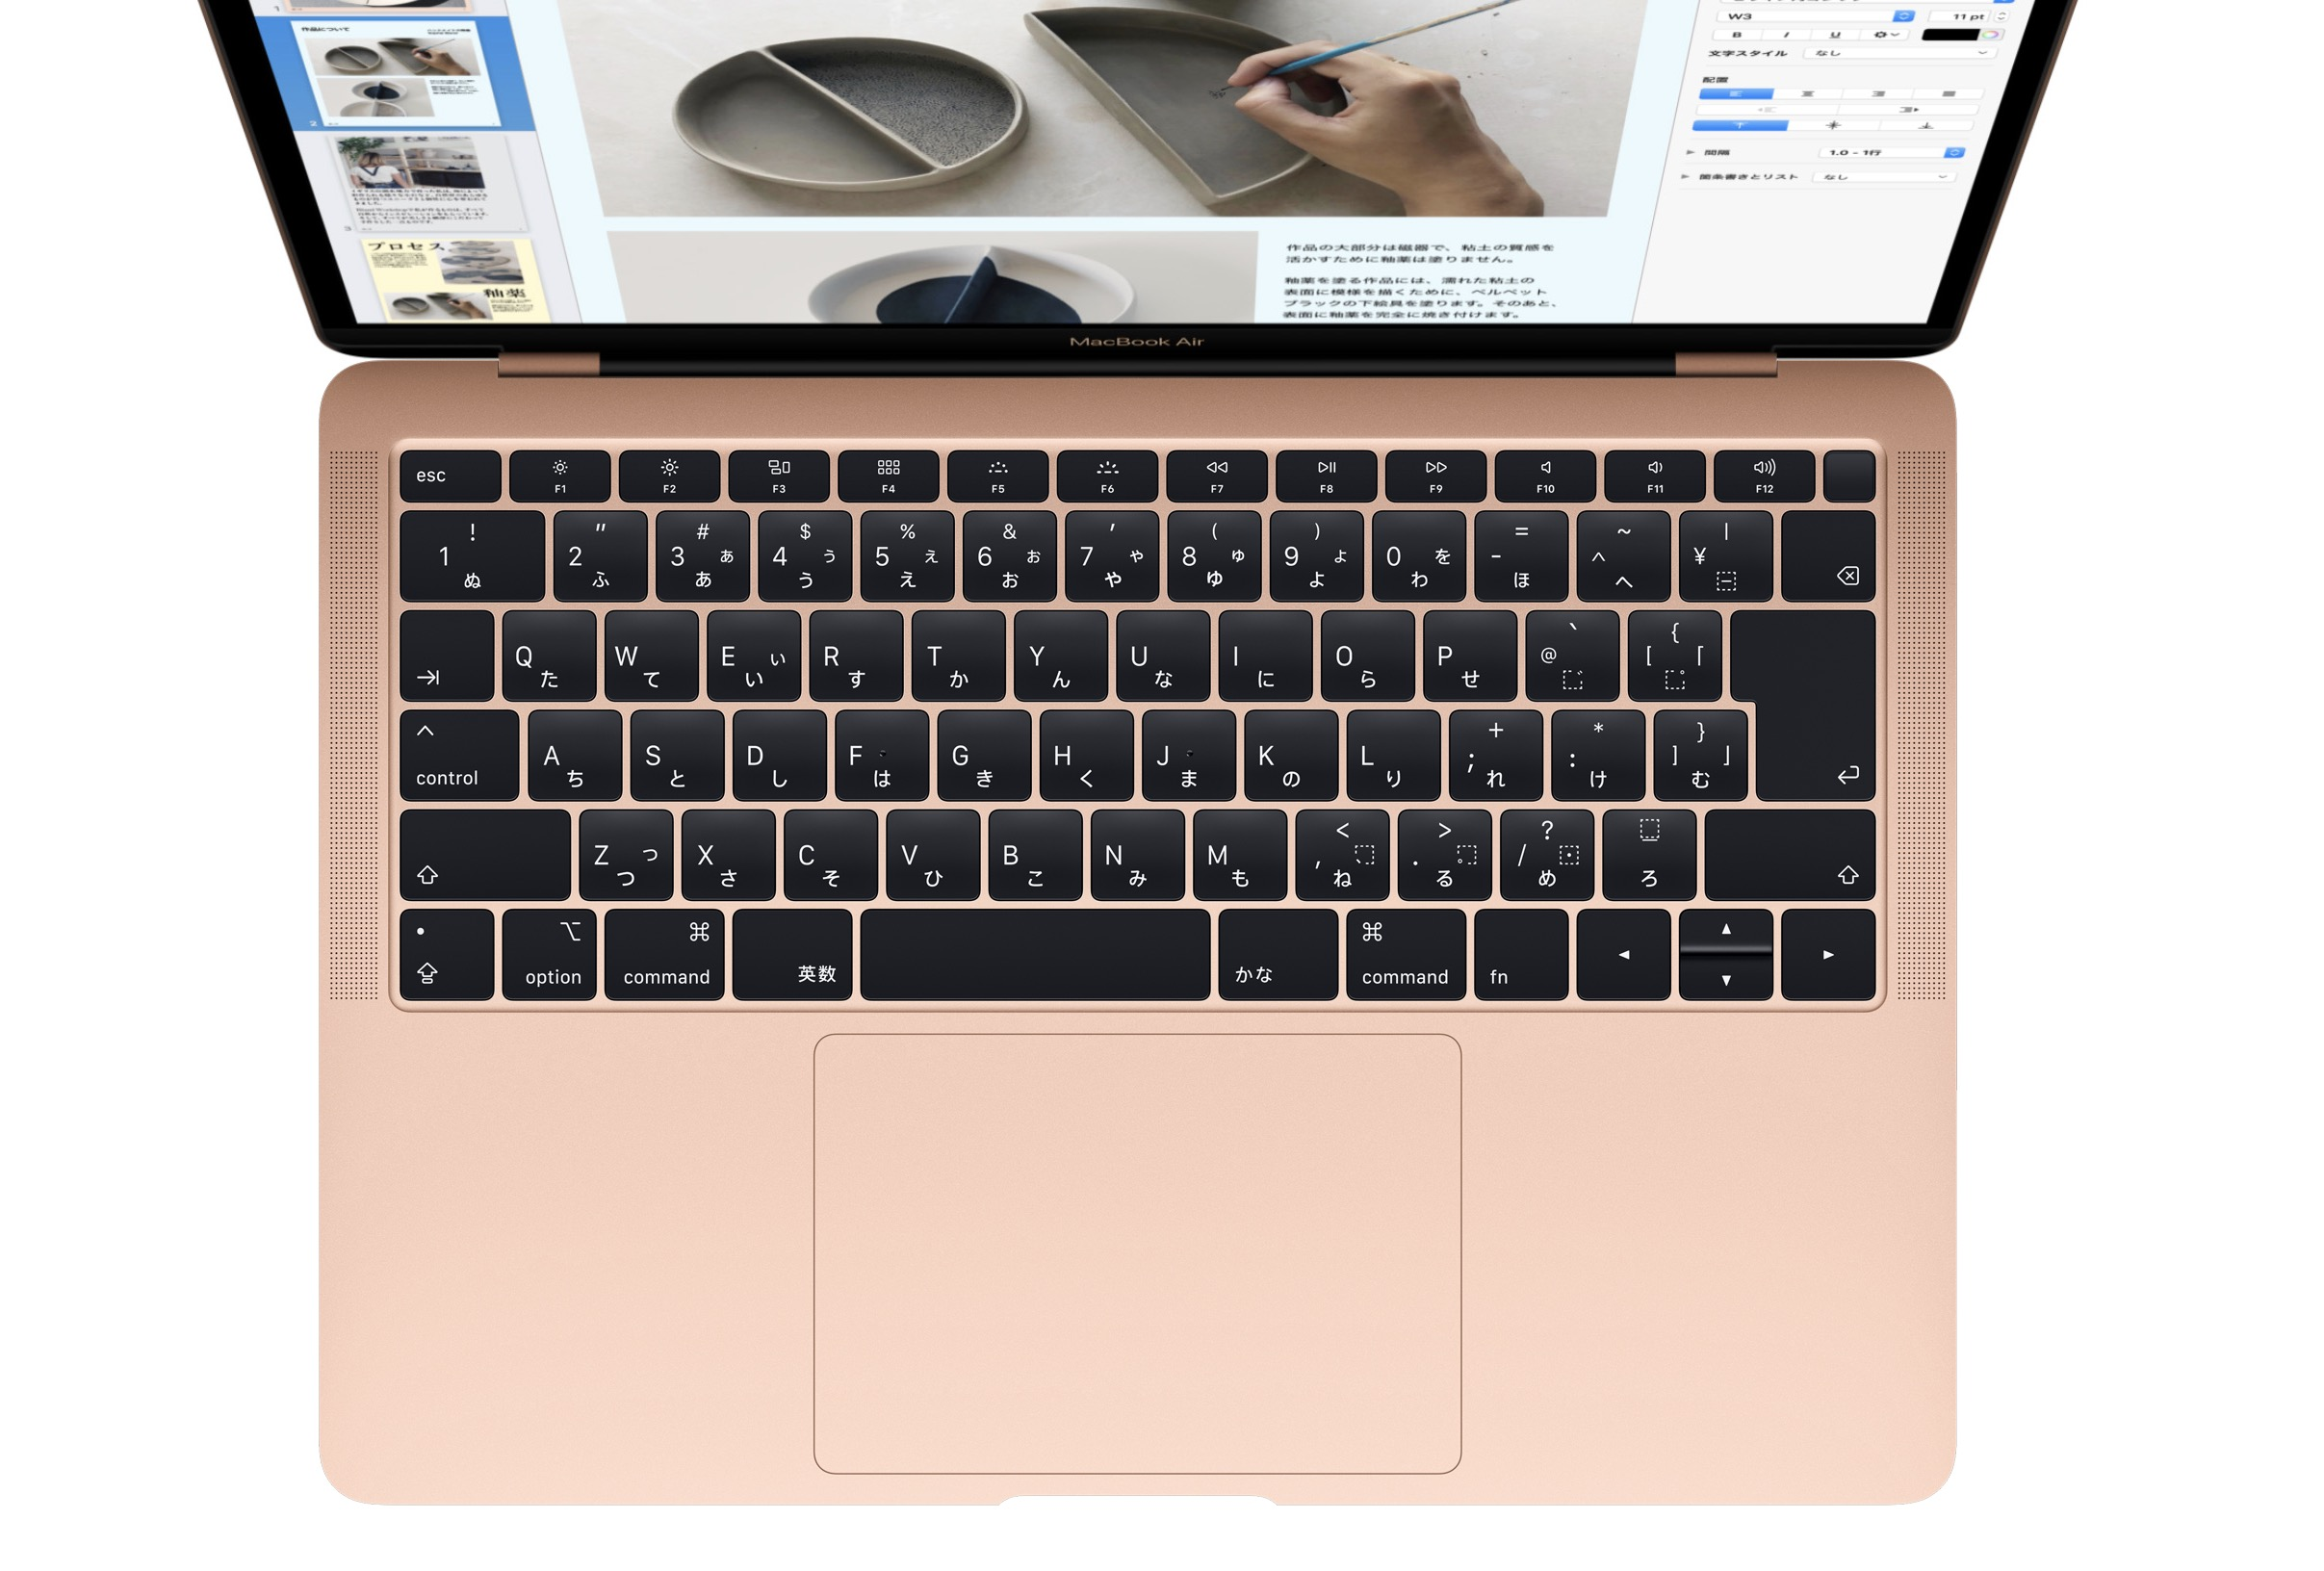 Macbook Air 2018 キーボード